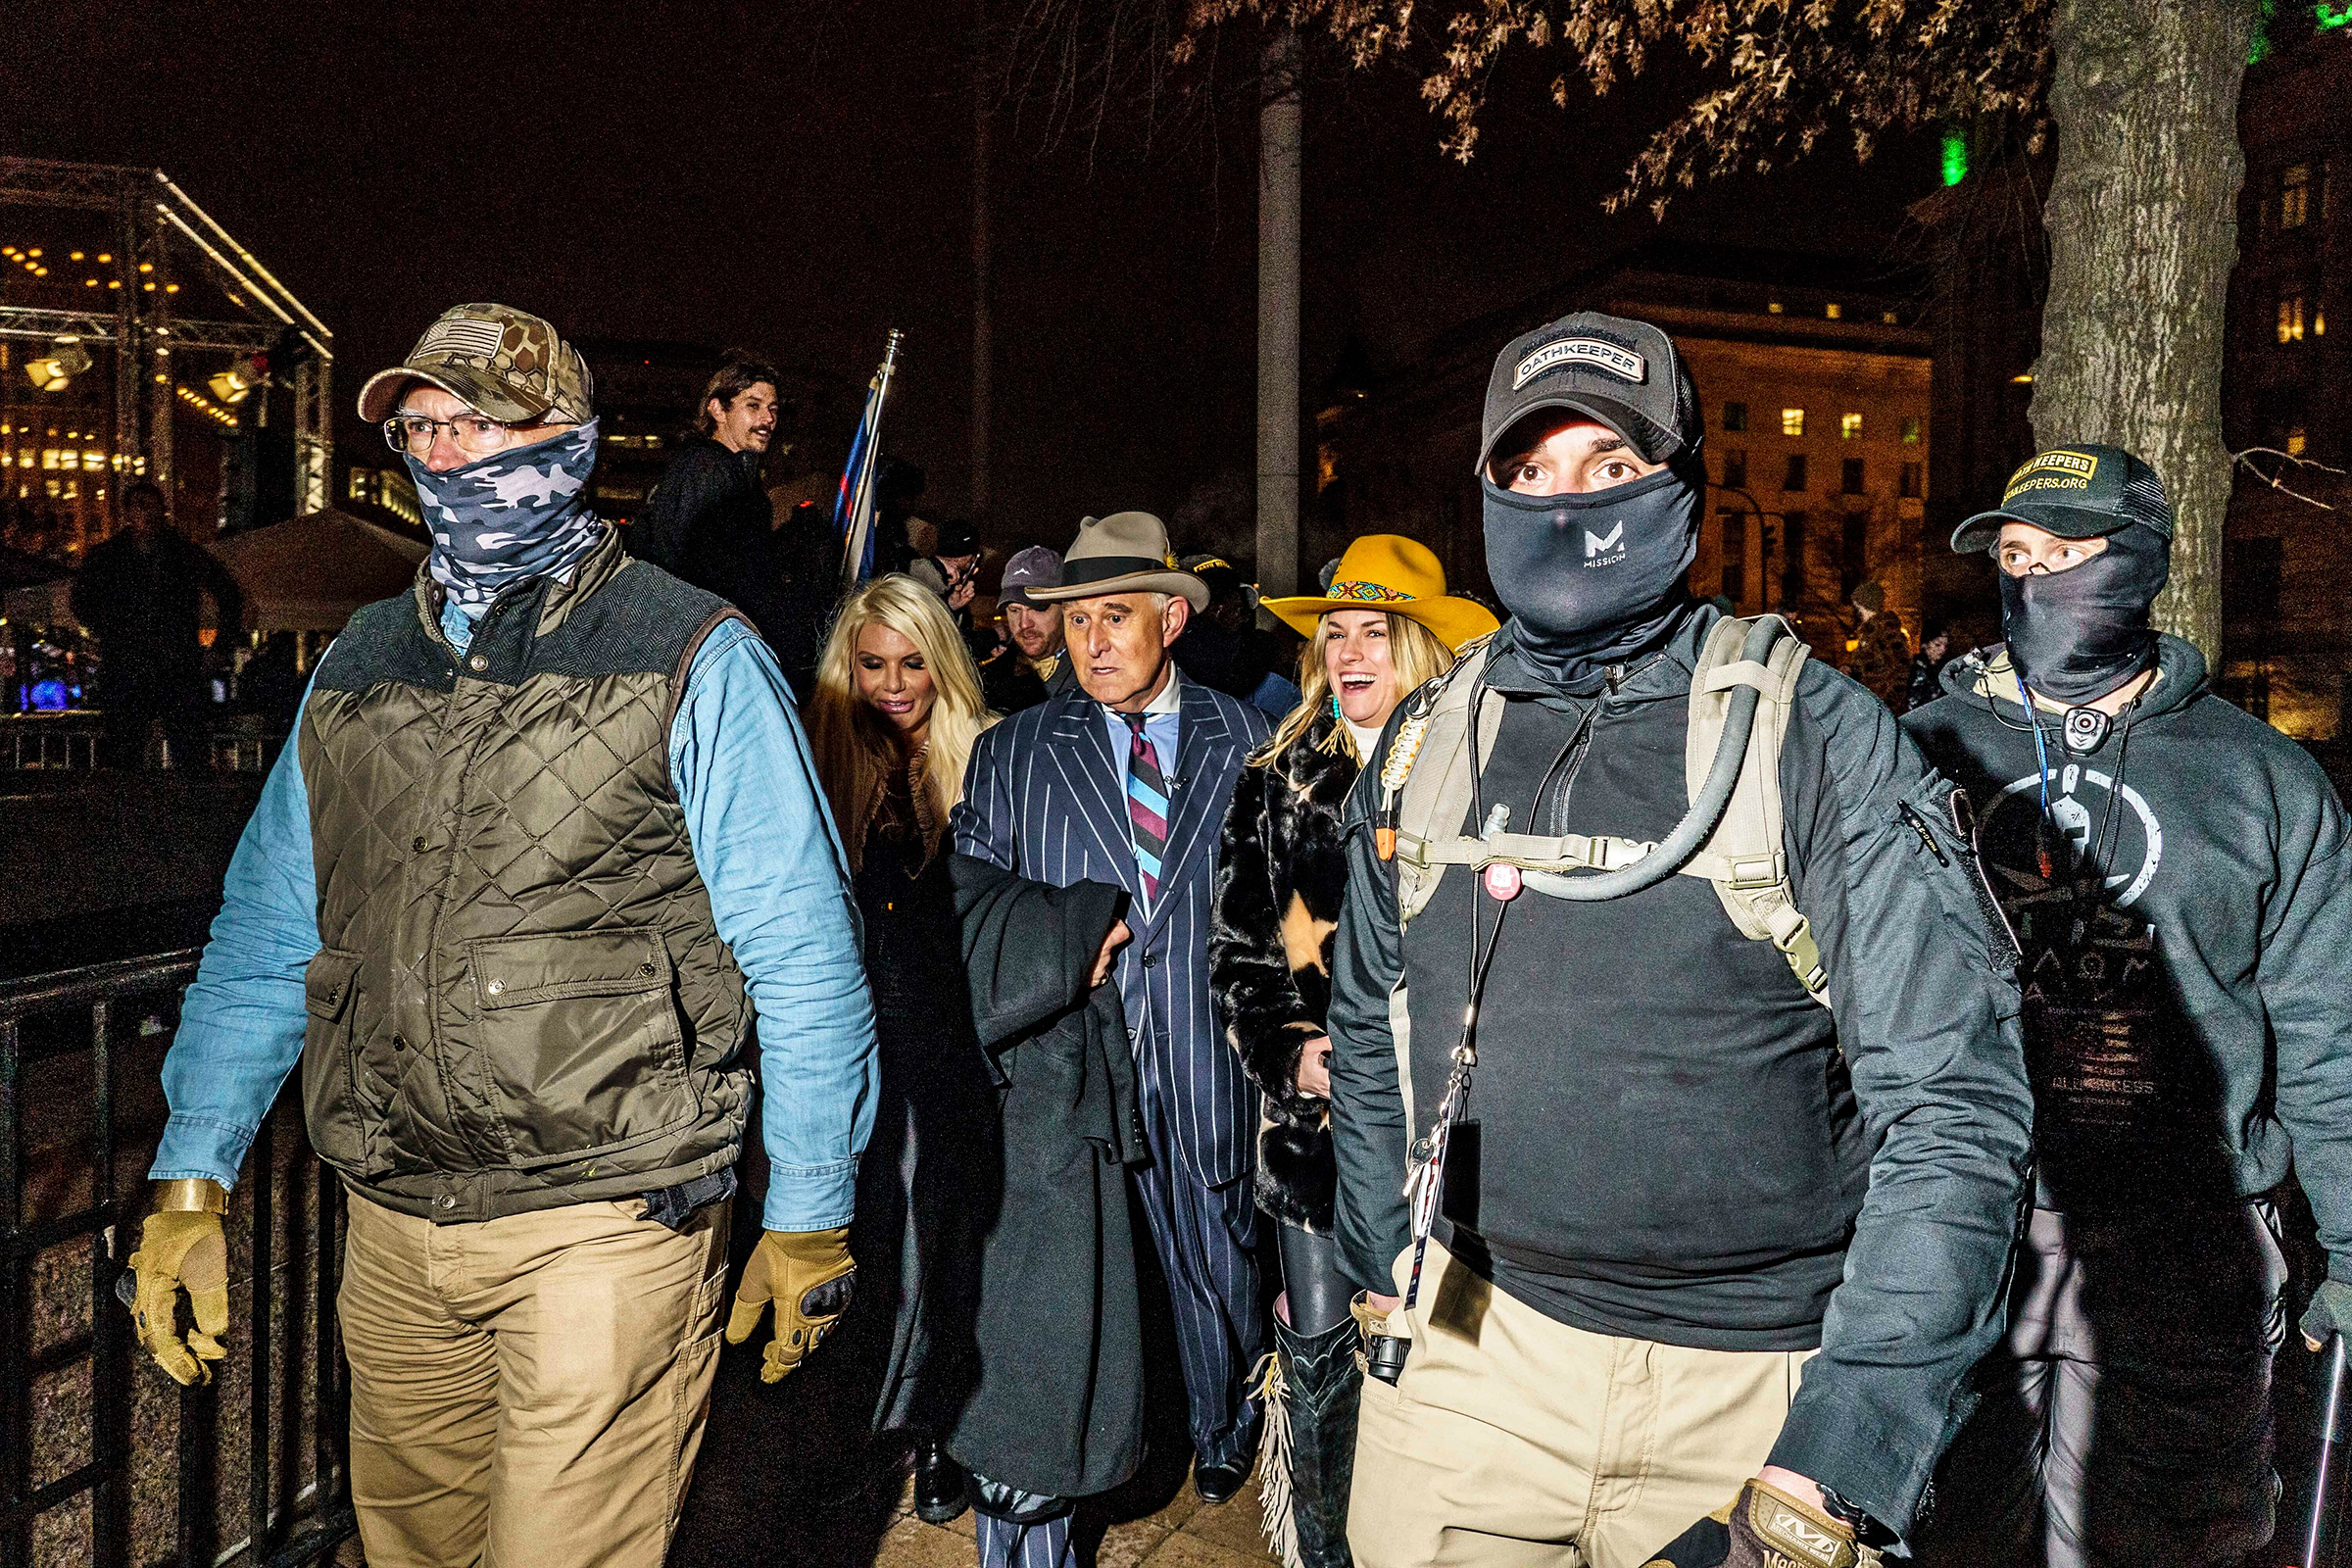 James, front right, and fellow Oath Keepers escort former Trump adviser Roger Stone to a rally in Washington the night before the insurrection